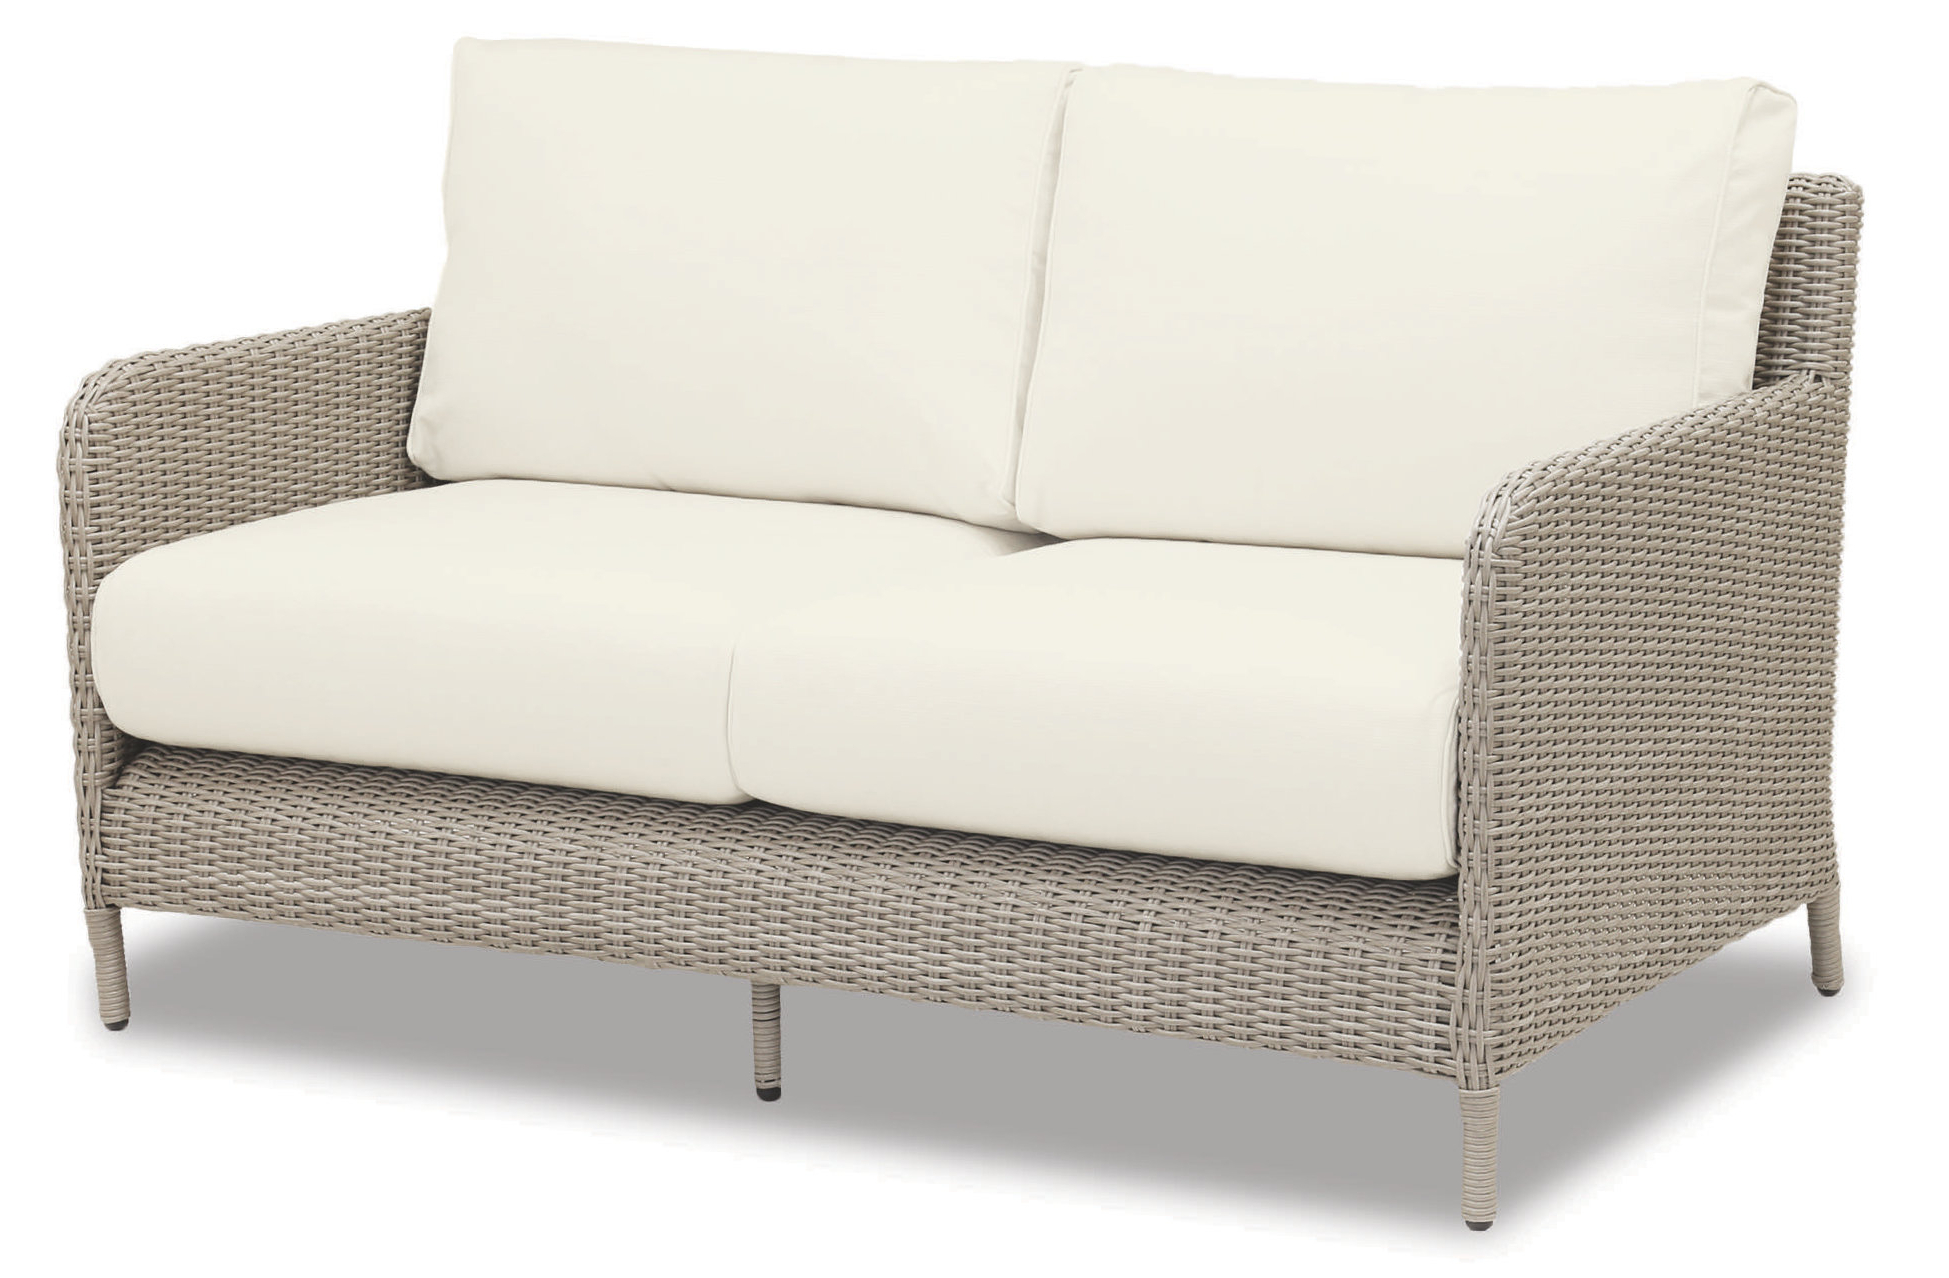 Most Recent Baltic Loveseats With Cushions For Manhattan Loveseat With Cushions (View 15 of 25)